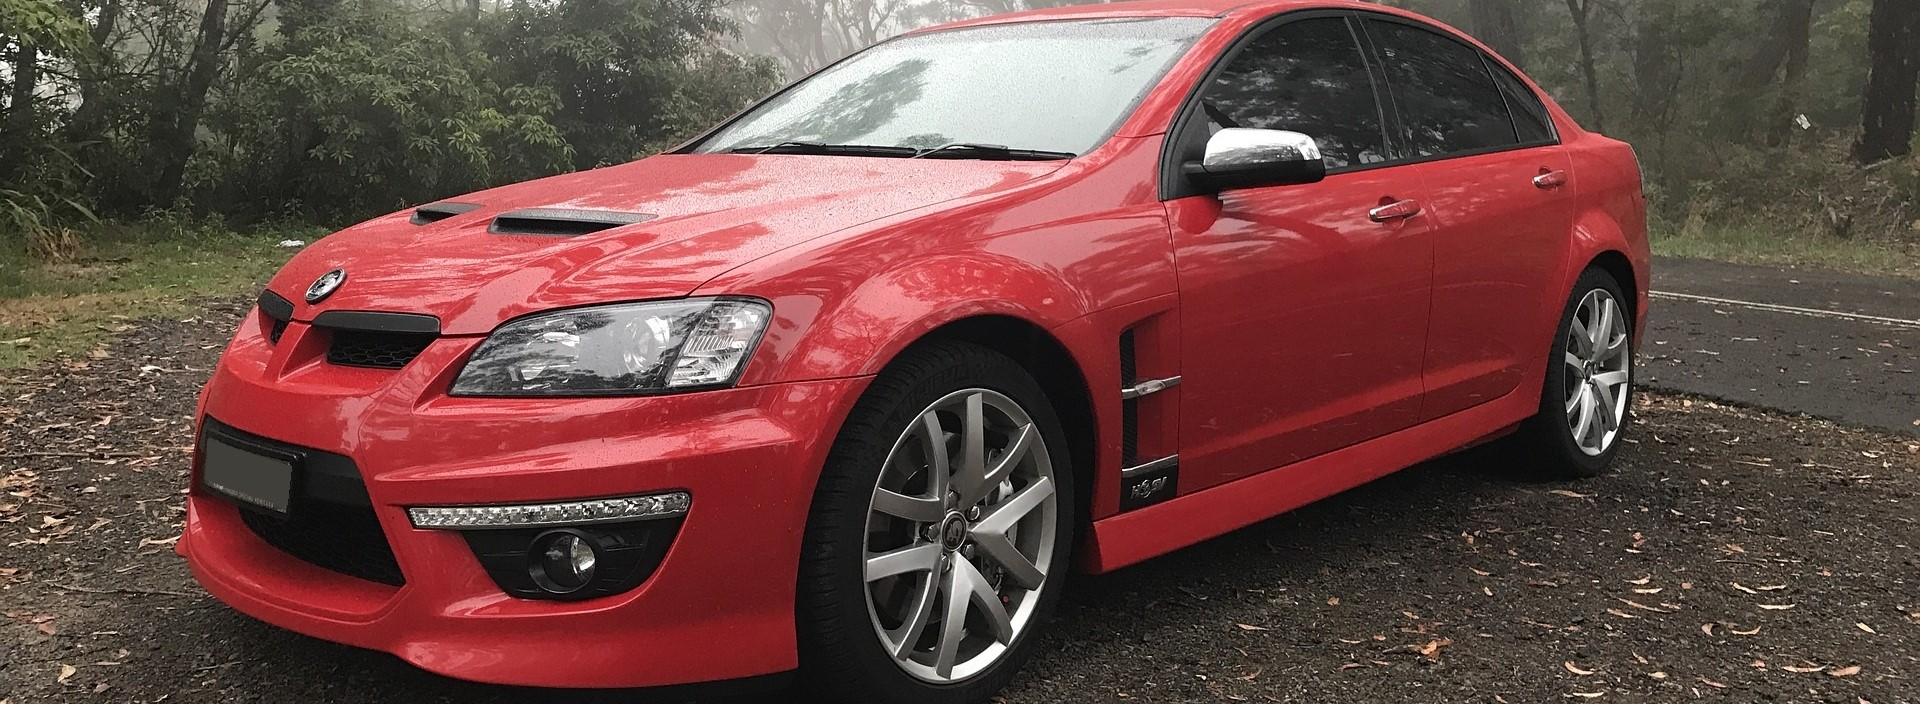 Red Car in Jacksonville, Florida | Breast Cancer Car Donations